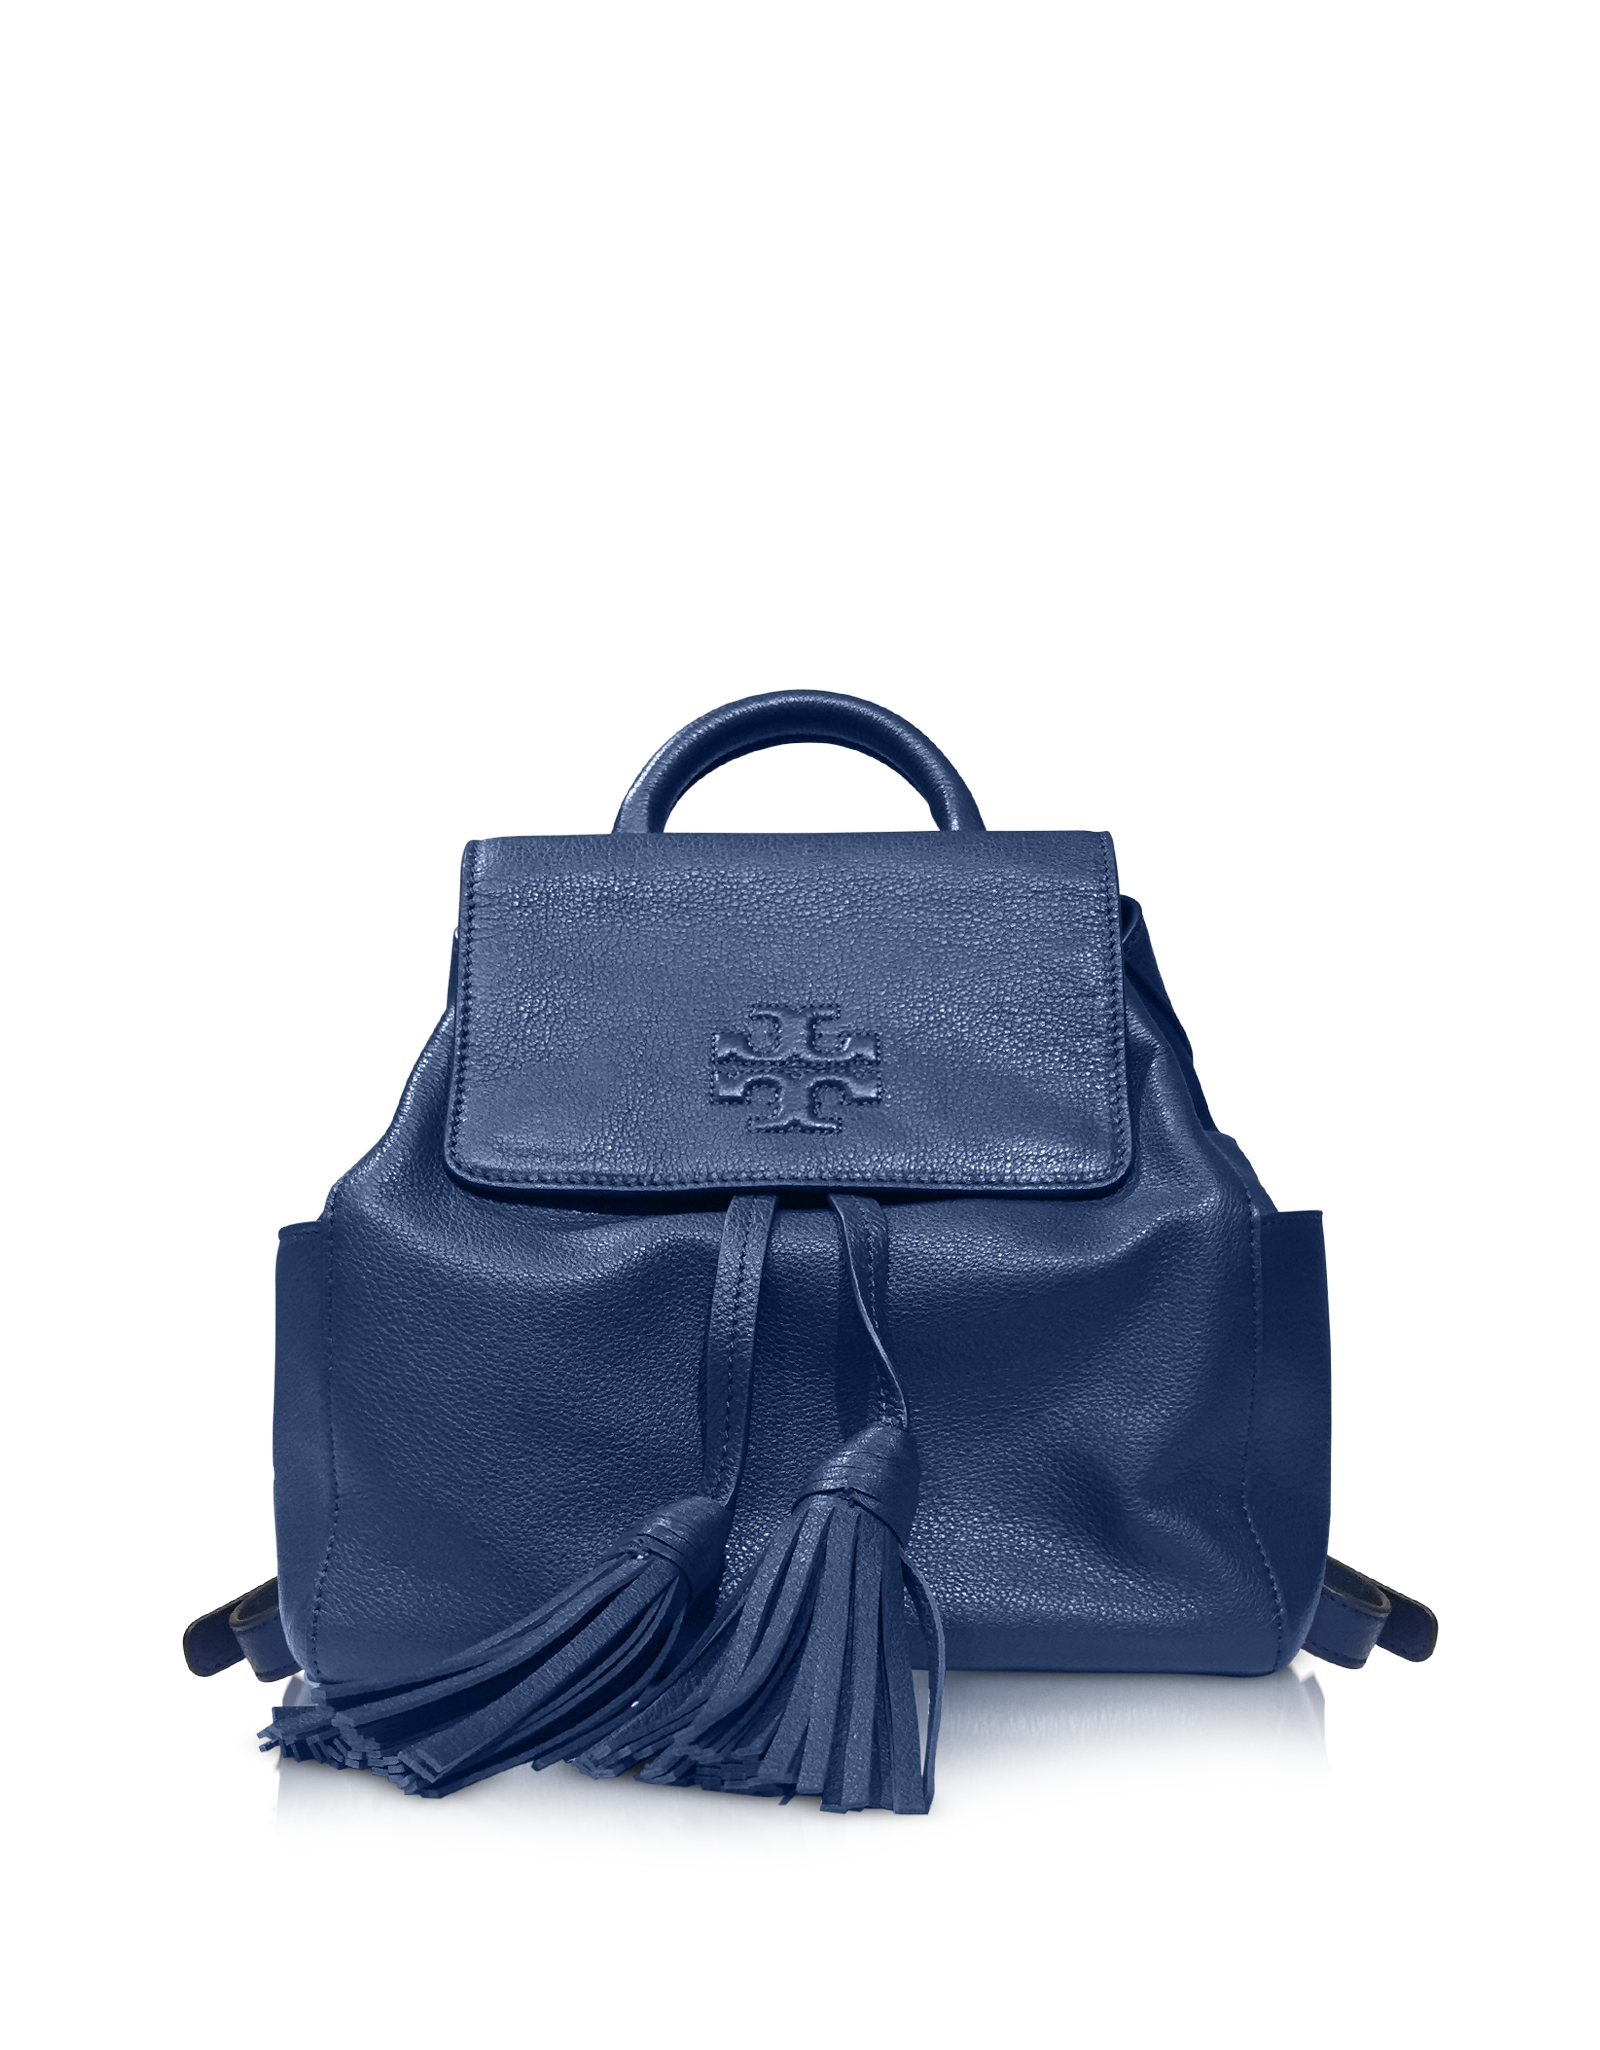 1a403cfa6df Tory Burch Thea Tidal Wave Pebbled Leather Mini Backback in Blue - Lyst